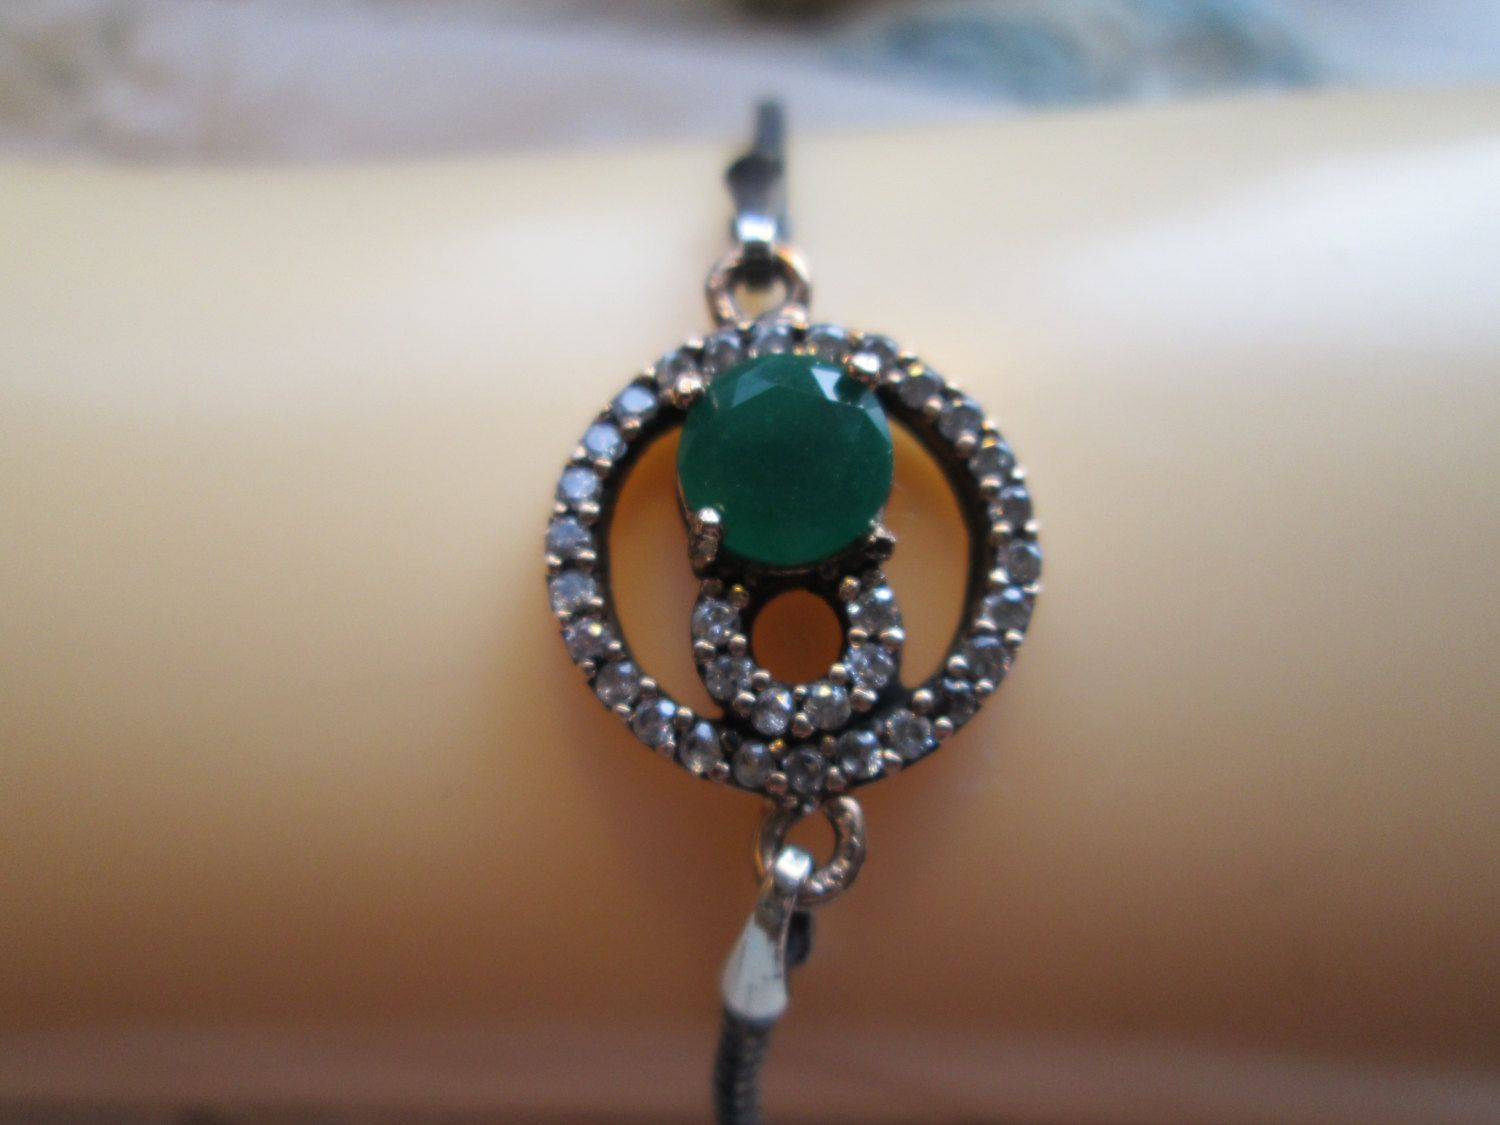 Vintage Sparkling Deco 1.64ctw Green Emerald & Icy White Sapphire Rose Gold/Sterling Silver Bracelet 8 Inches, Wt. 5.3 Grams by TamisVintageShop on Etsy